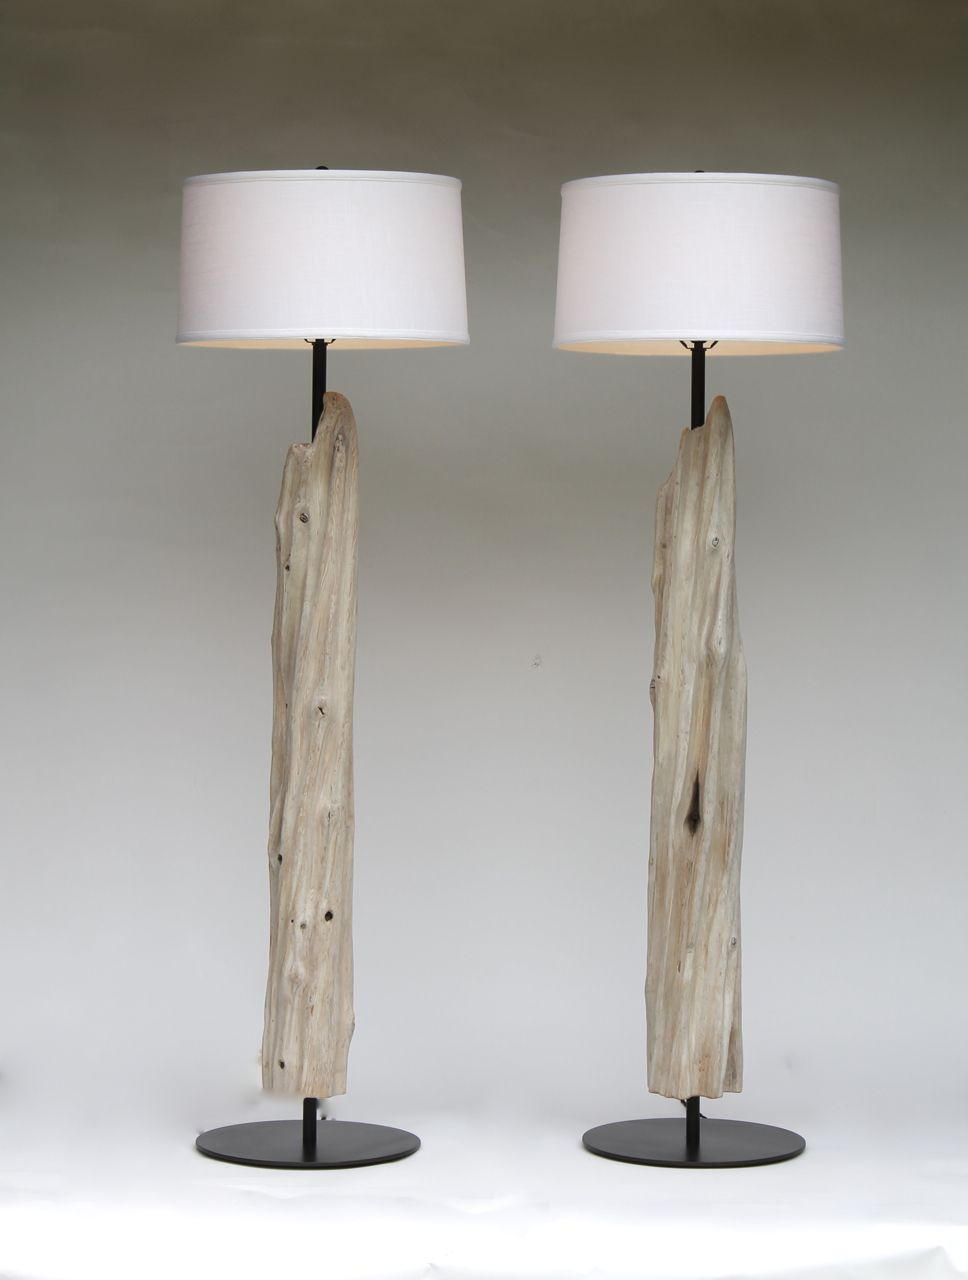 driftwood living tables cheap nautical lamps ideas home drift theme tree t furniture in with white wood table attached teak square lights charming inspiring floor for lamp branch bronze